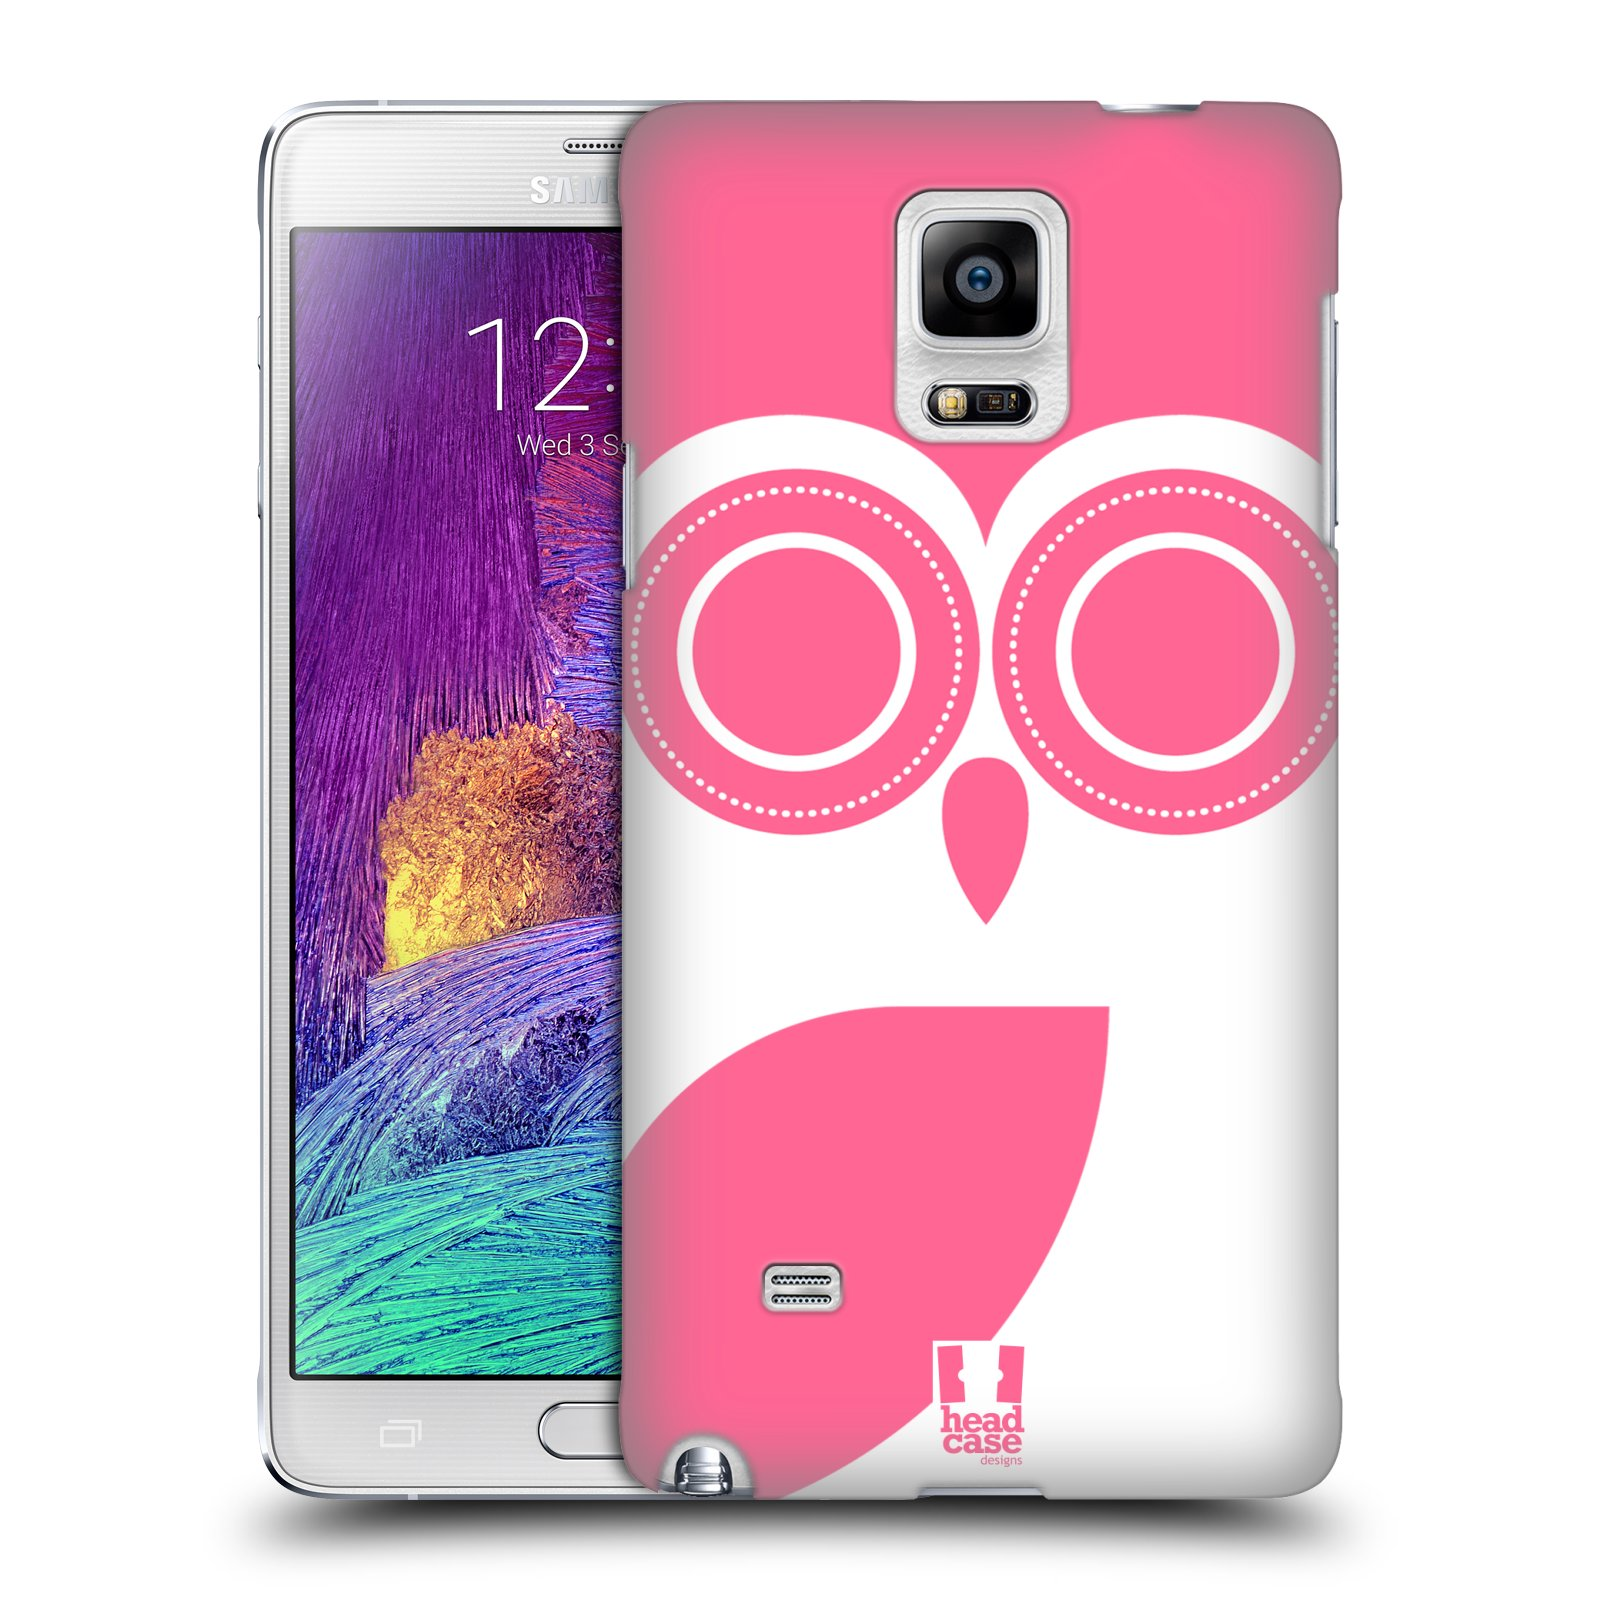 HEAD CASE DESIGNS DARLING OWLS CASE COVER FOR SAMSUNG GALAXY NOTE 4